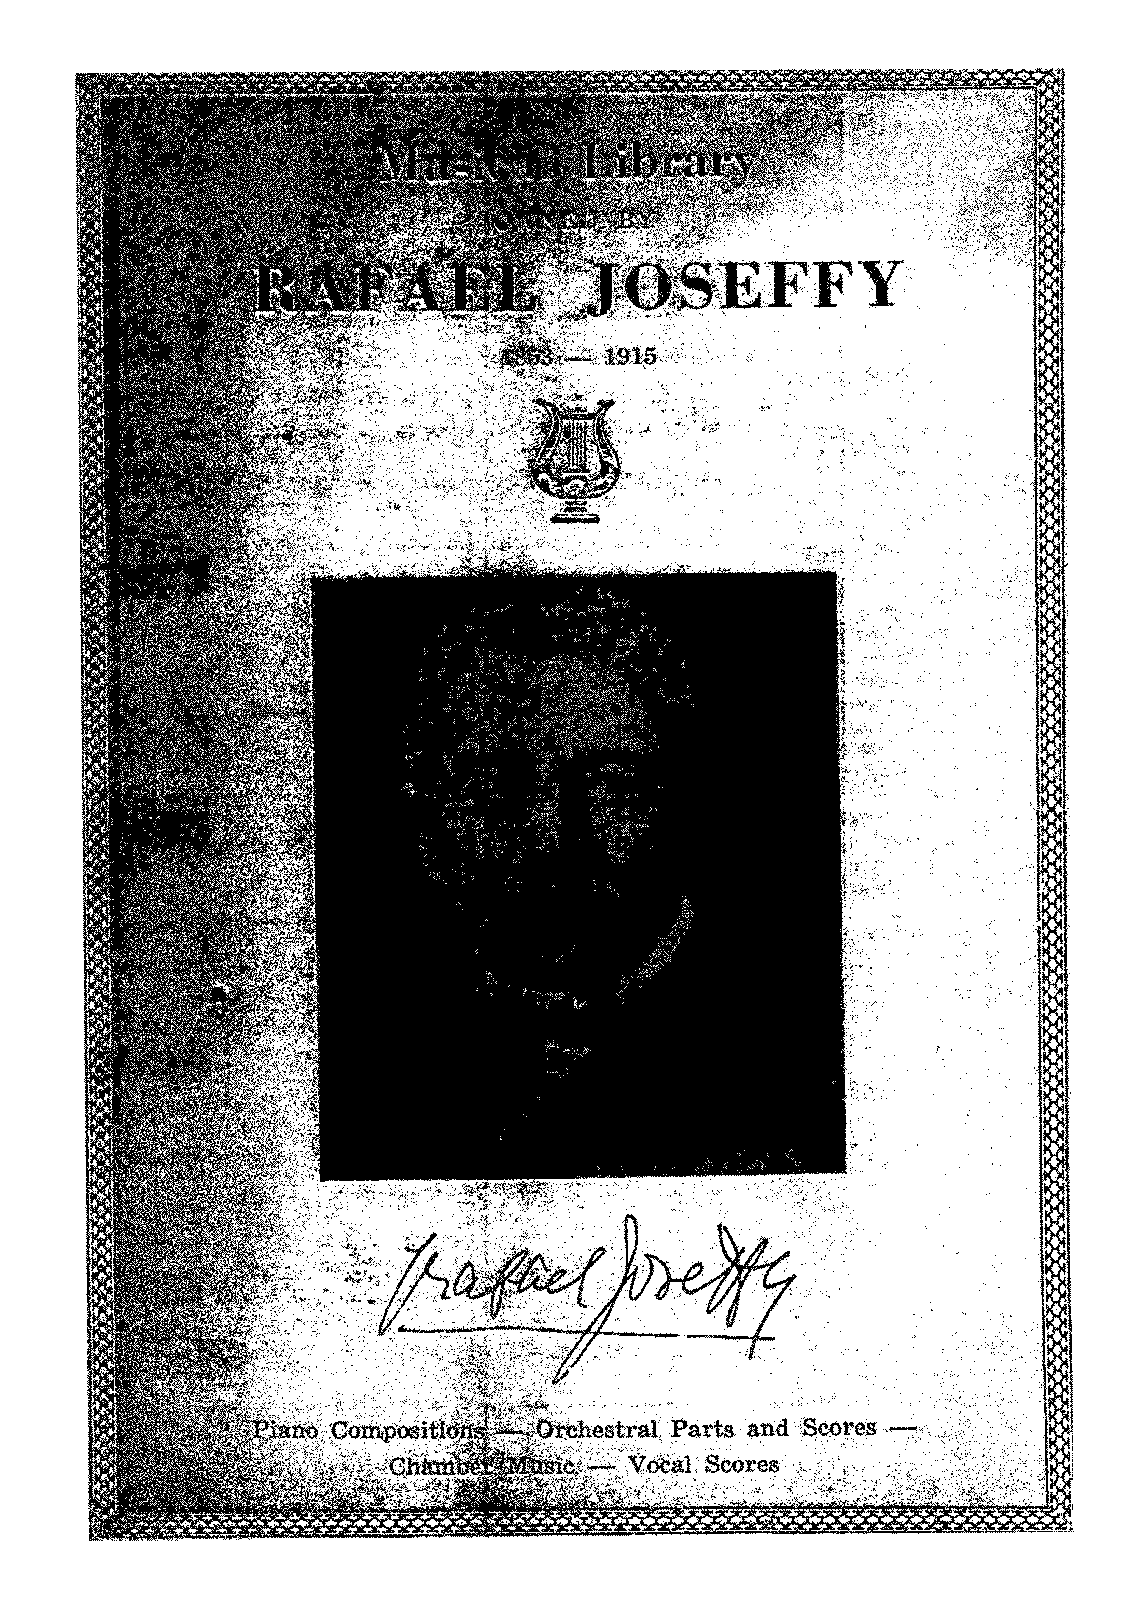 PMLP331220-Joseffy - Catalog of Musical Library owned by Joseffy.pdf